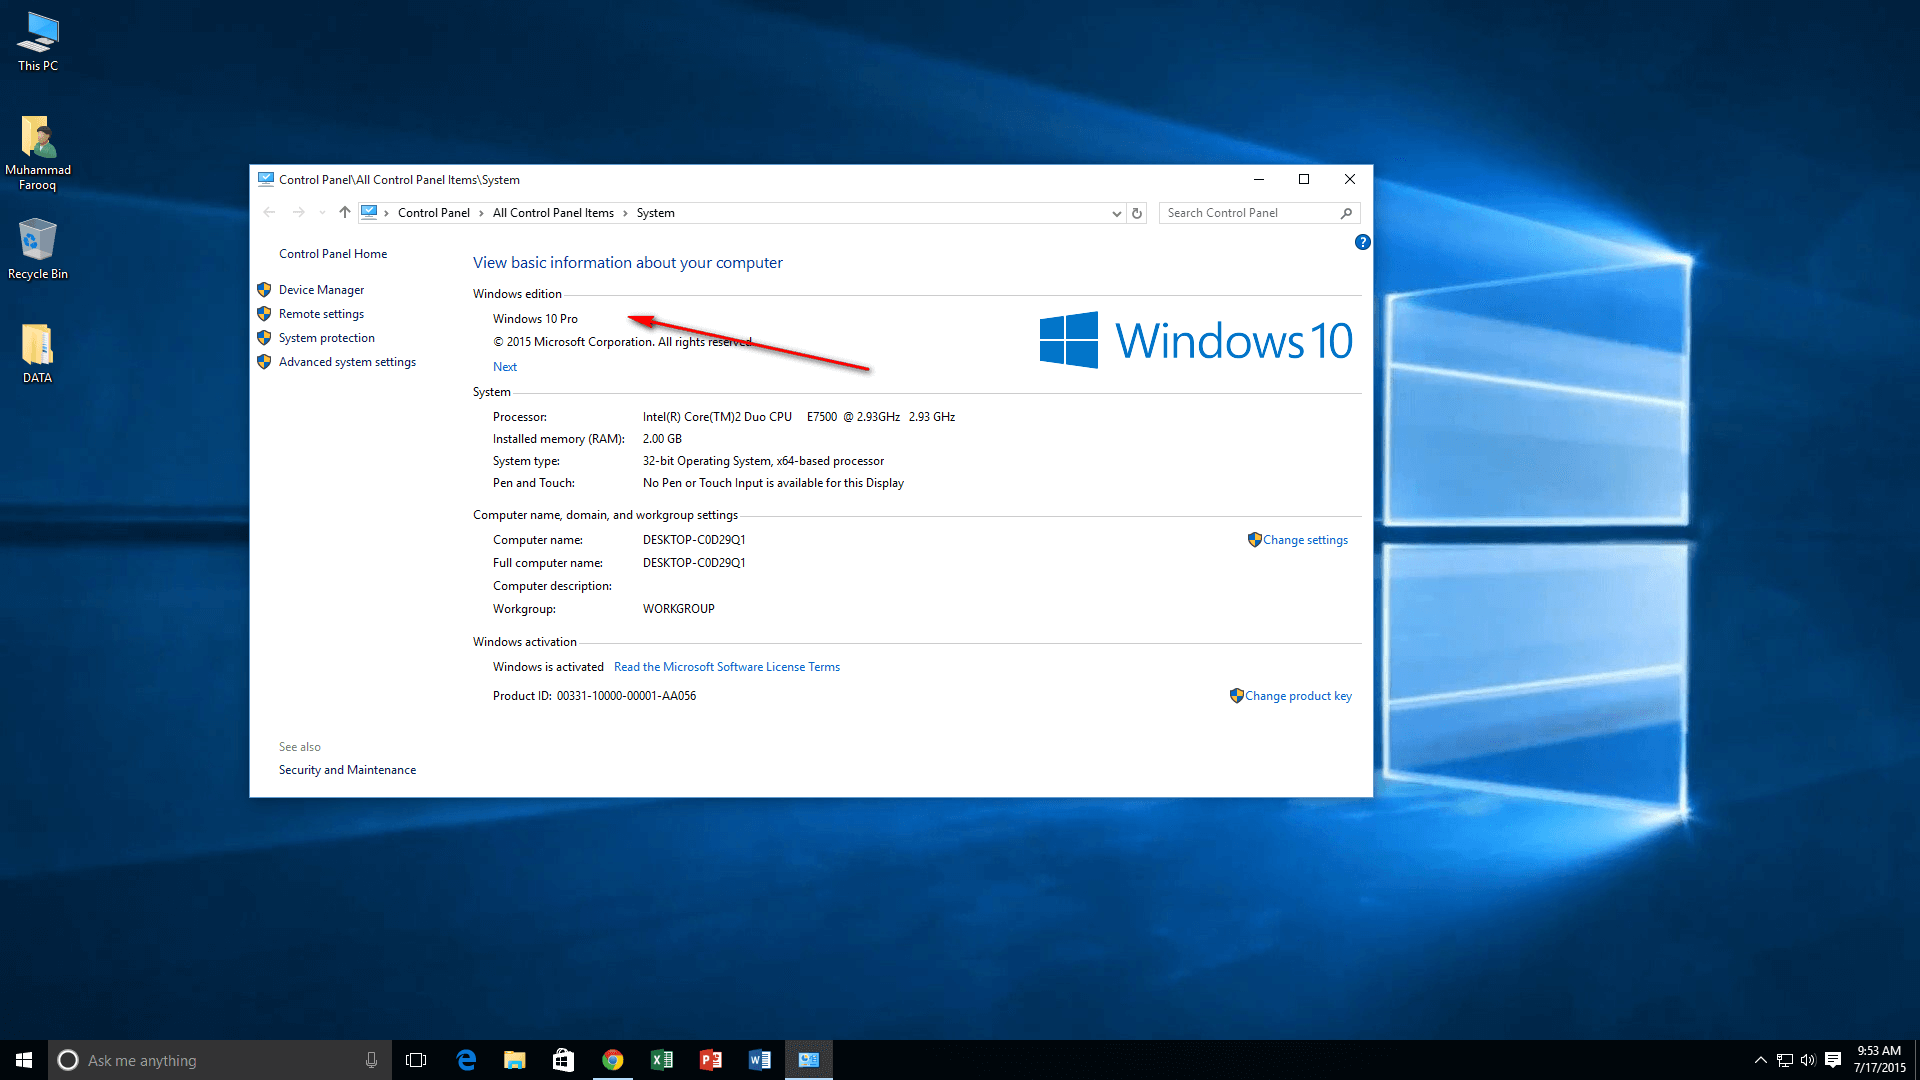 Windows 10 available 01